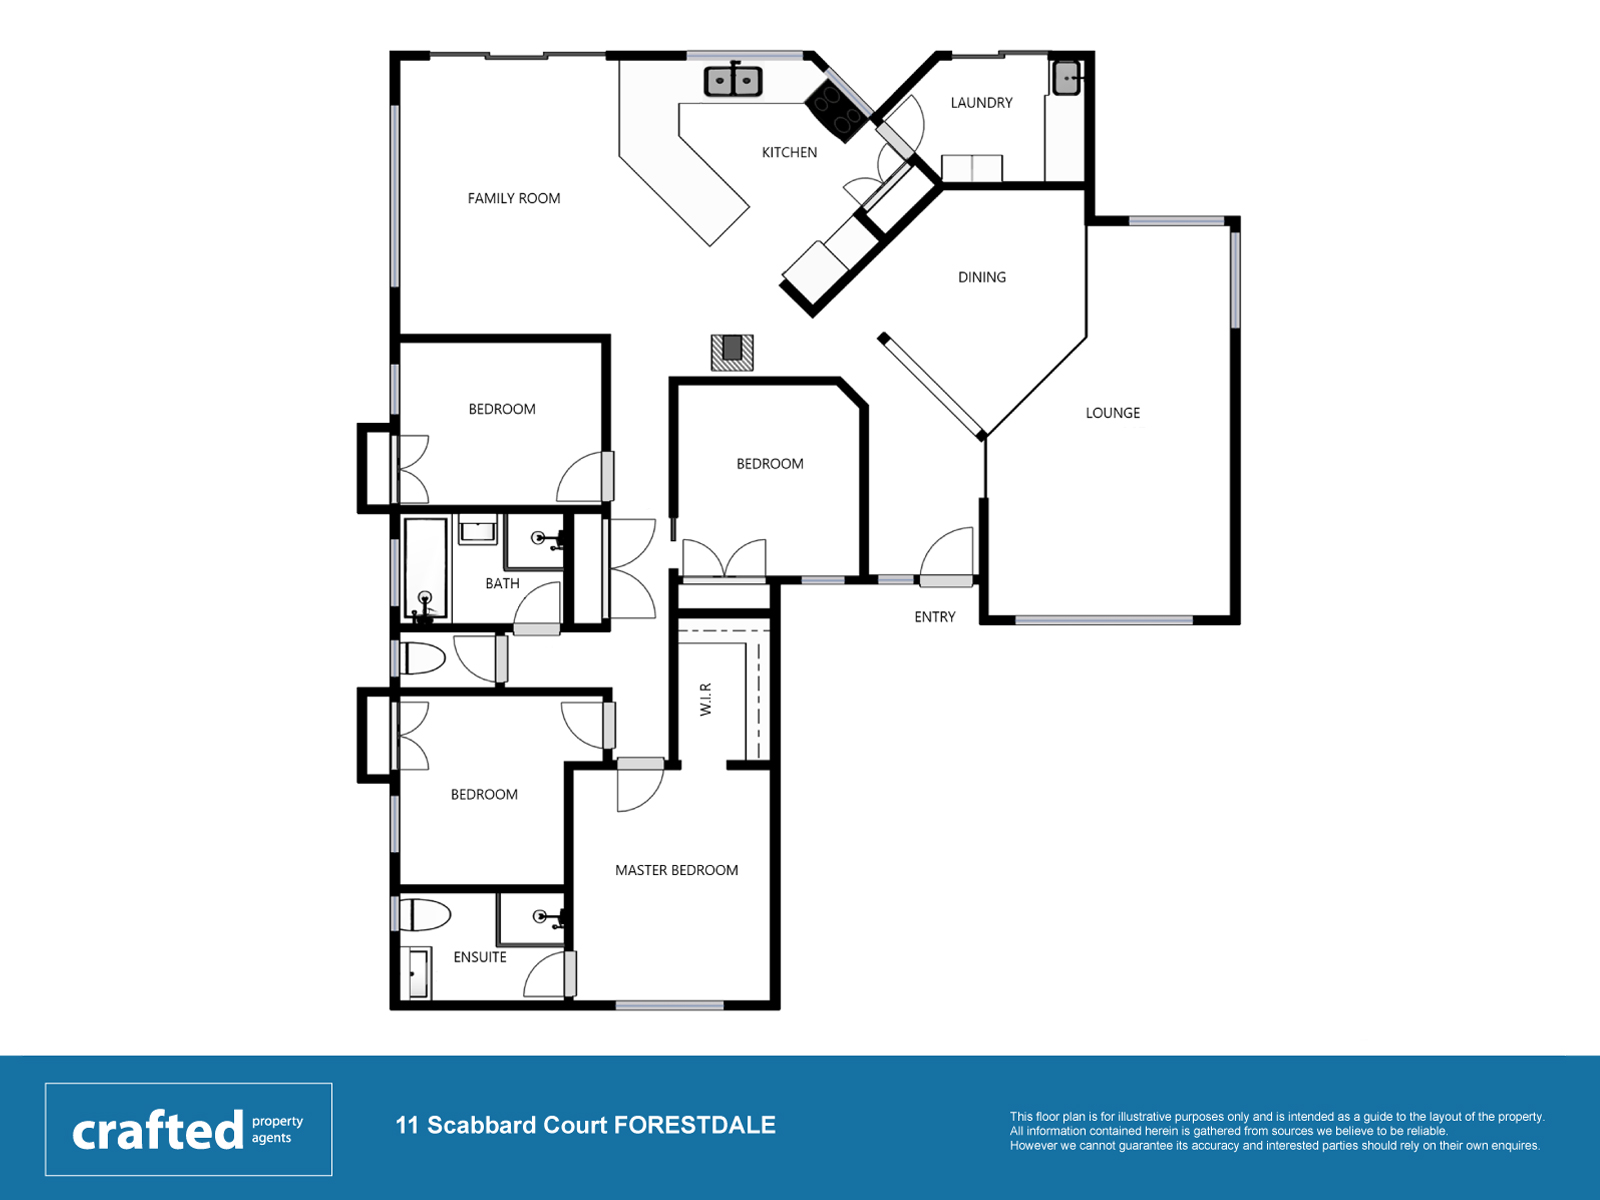 11 scabbard court forestdale crafted property agents for 11 brunel court floor plans